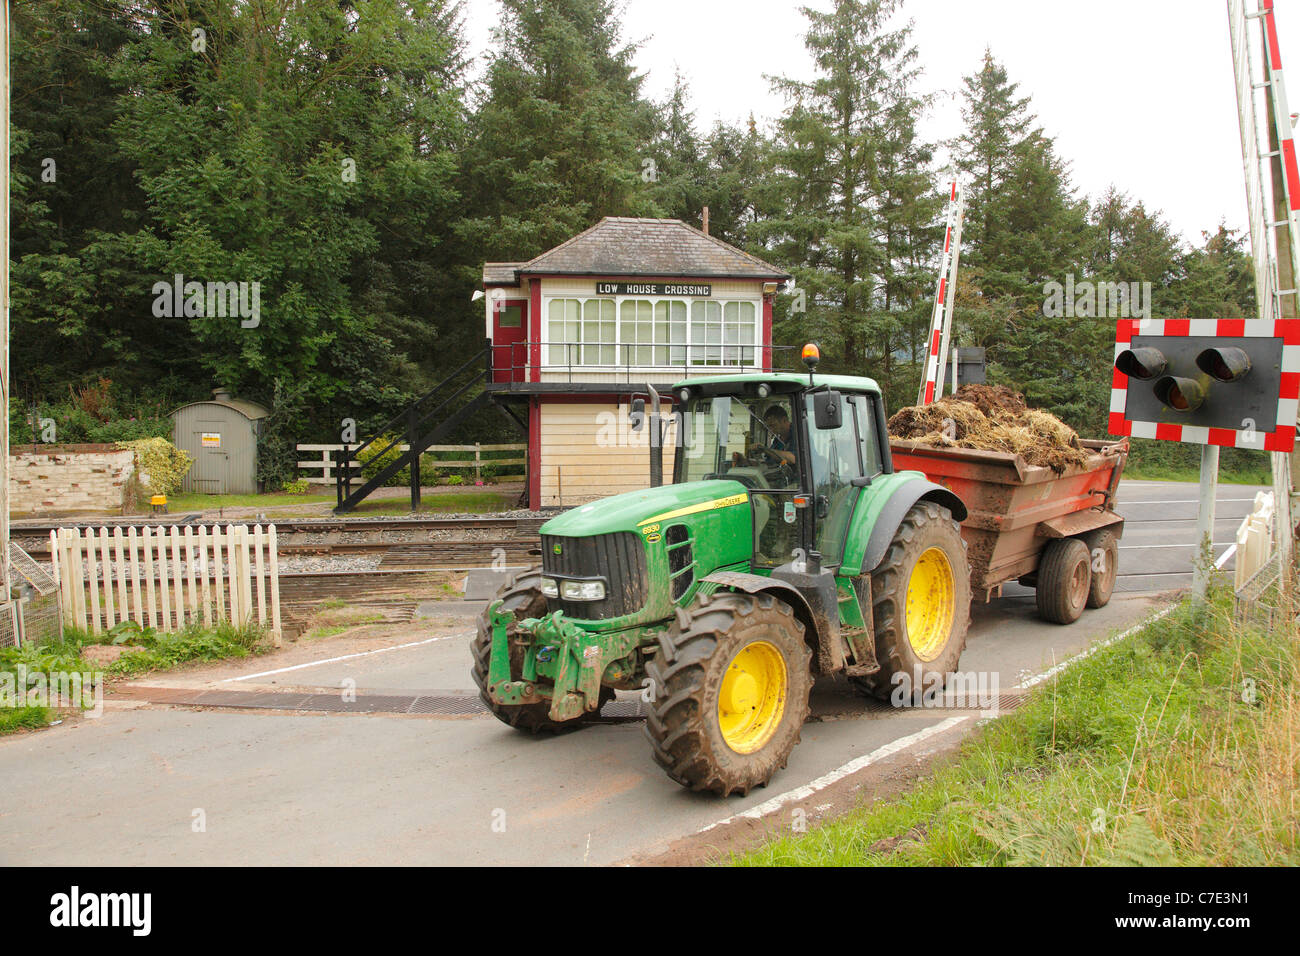 Tractor at Low House level crossing, Armathwaite, Settle to Carlisle Railway in the Eden Valley, Cumbria, England, - Stock Image